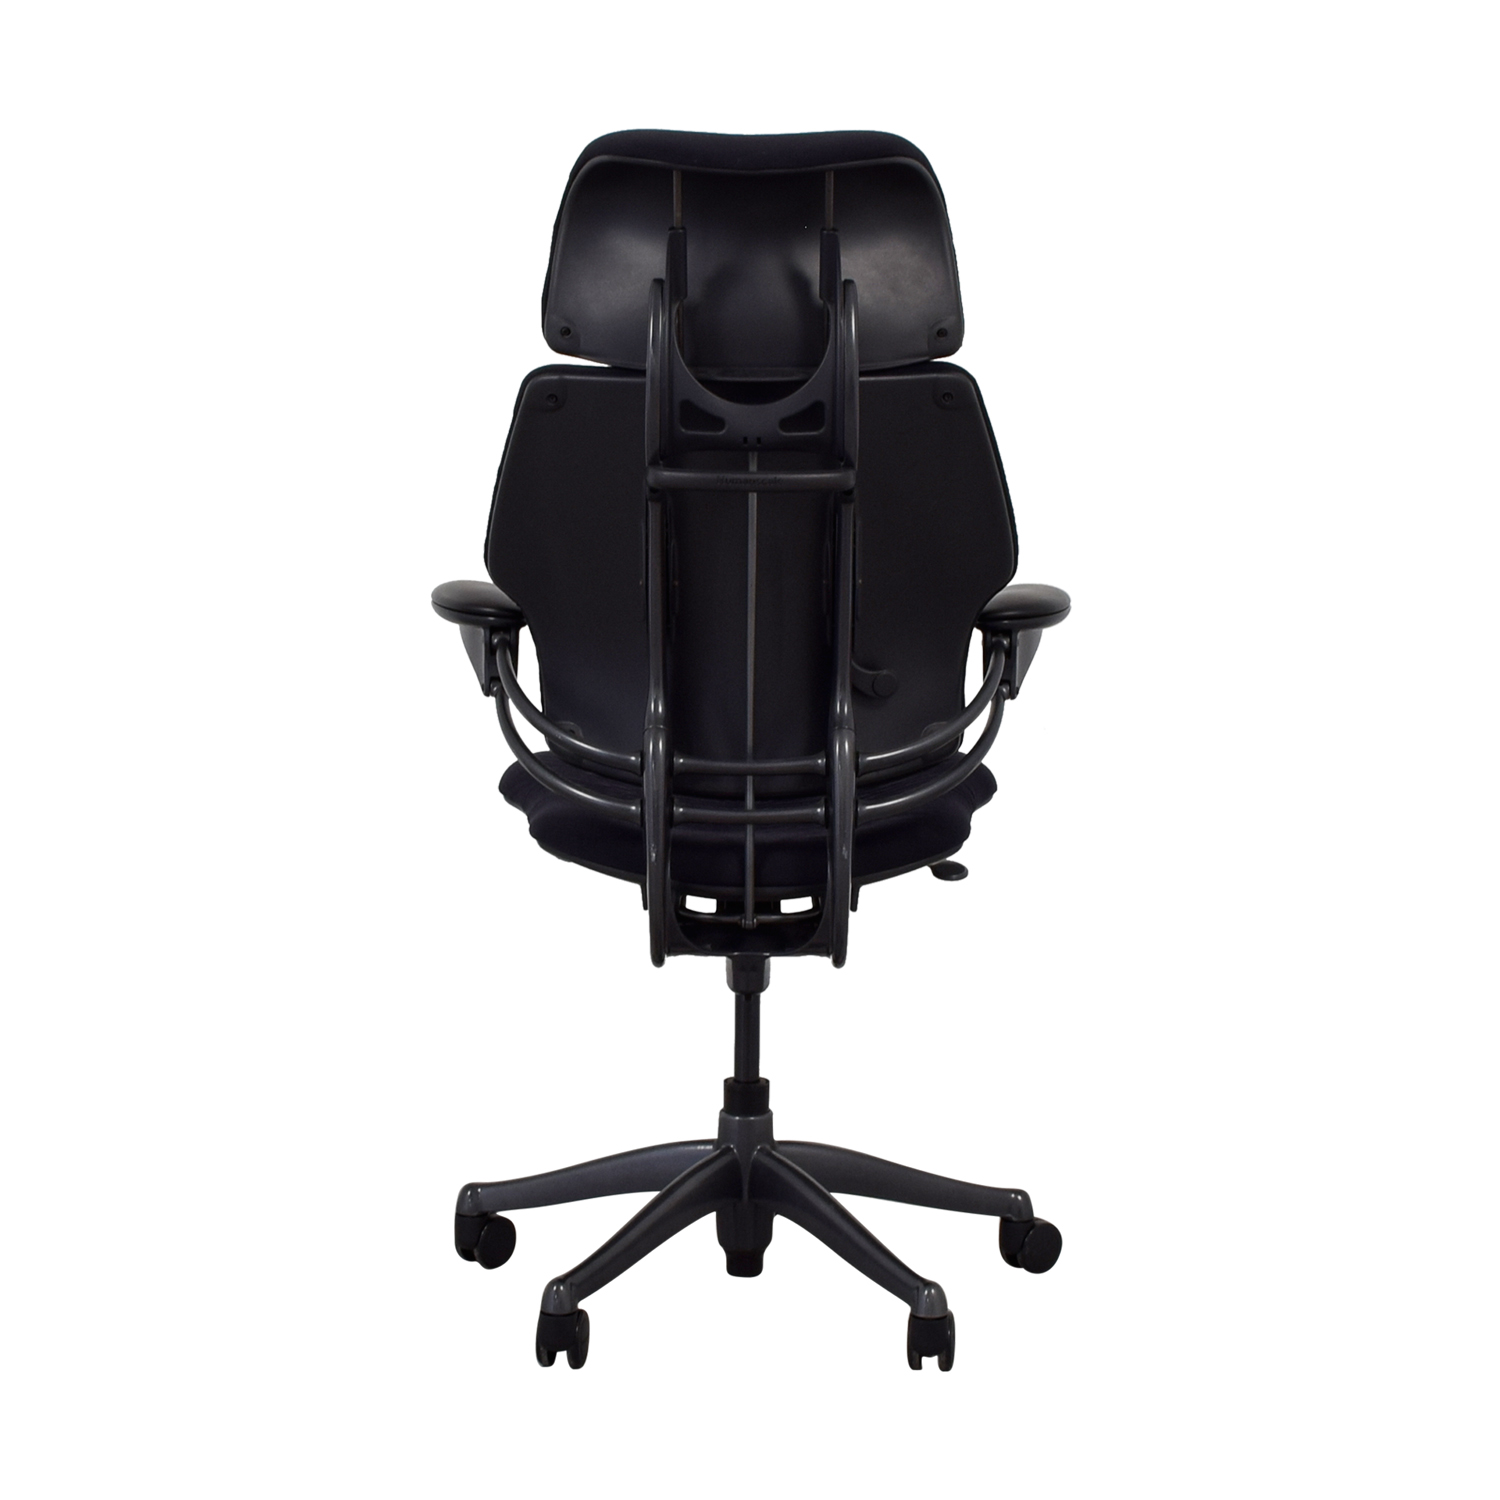 Humanscale Humanscale Freedom Chair with Headrest coupon